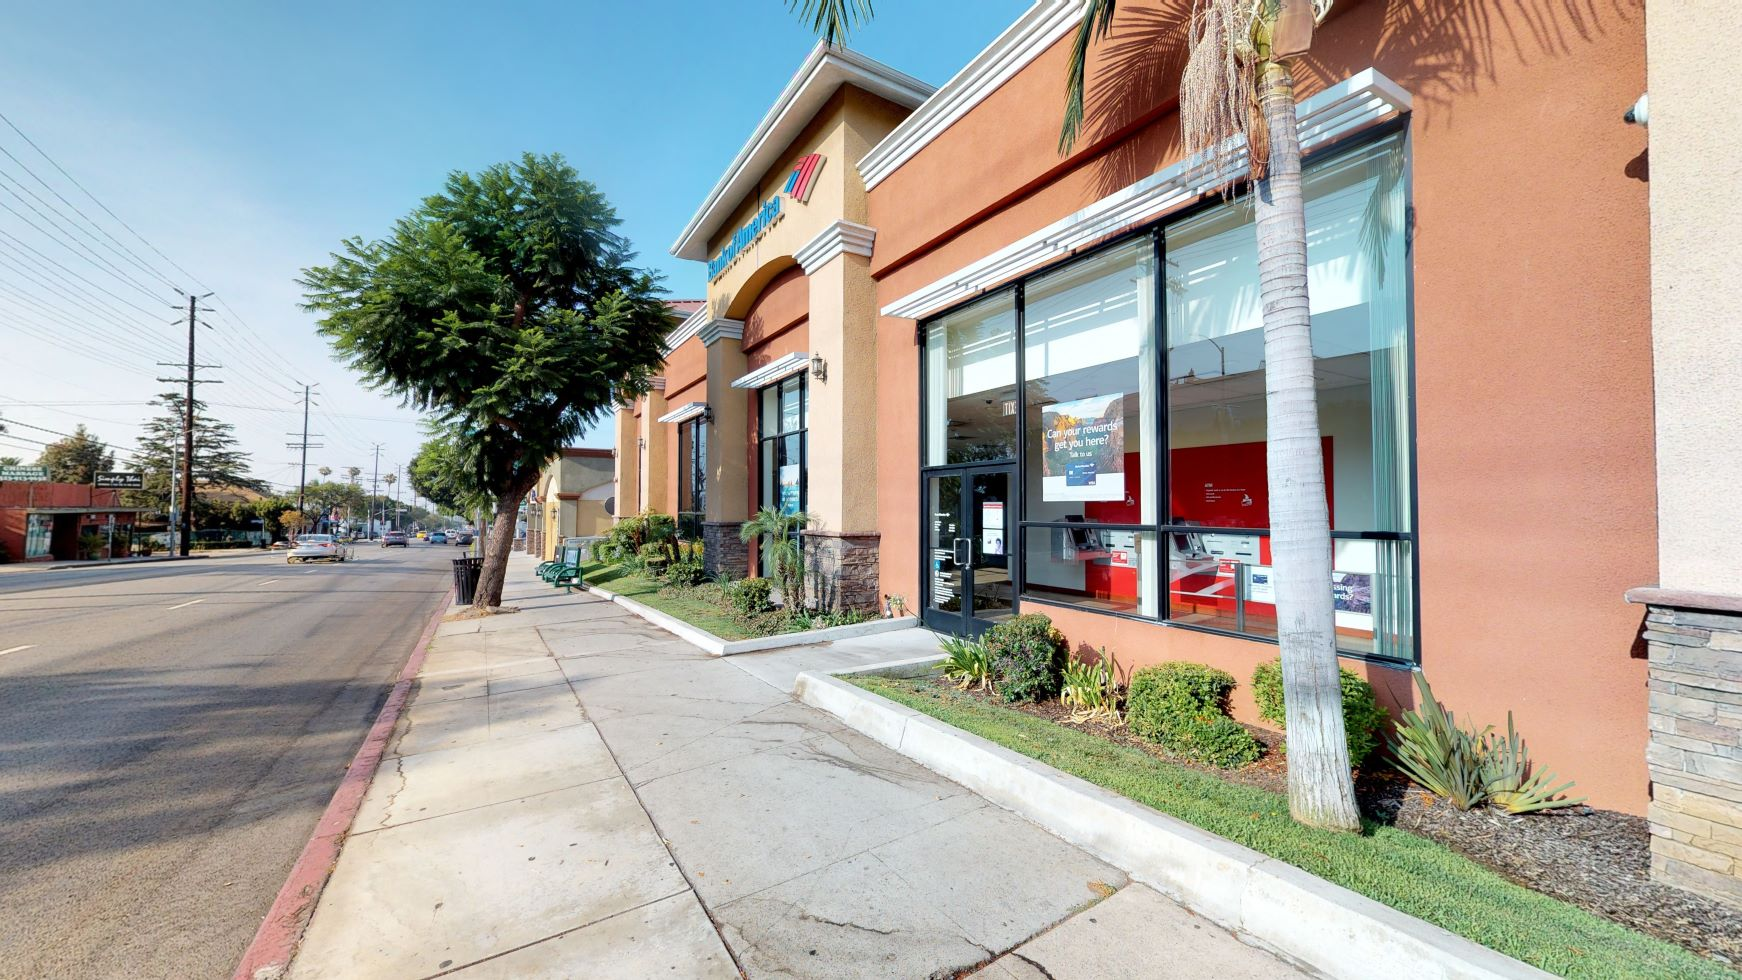 Bank of America financial center with walk-up ATM | 4510 Franklin Ave, Los Angeles, CA 90027